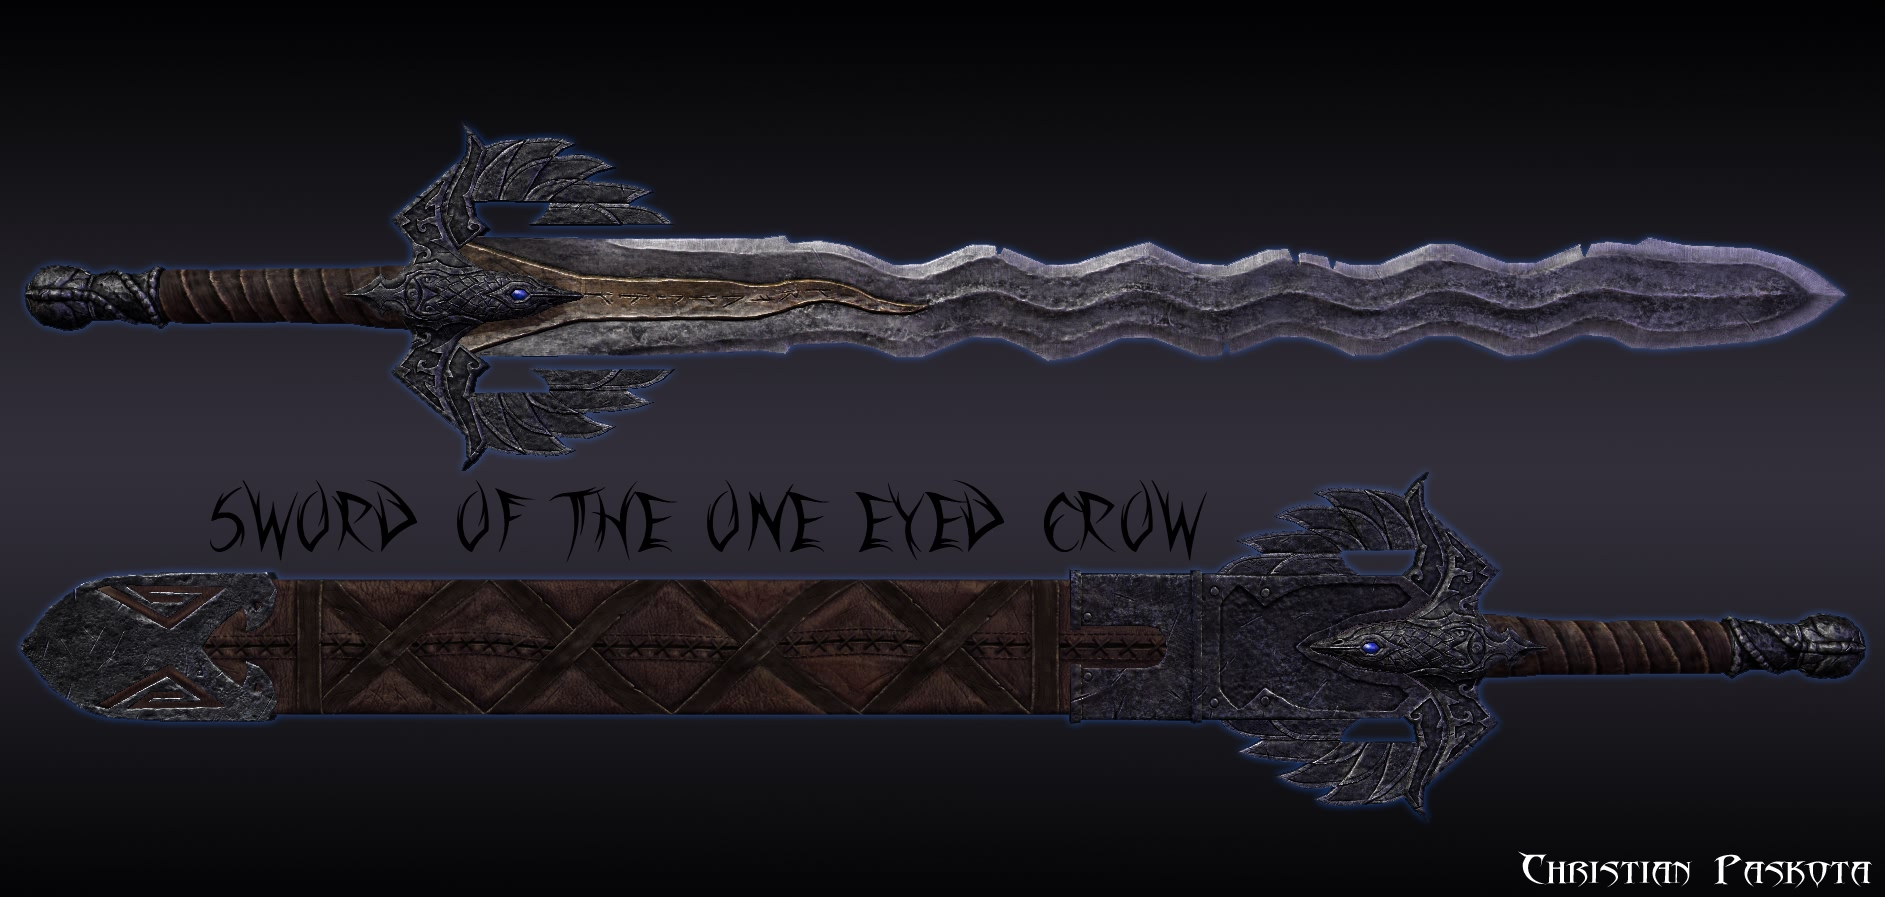 Skyrim Mod - The Sword Of The One Eyed Crow screenshot 1